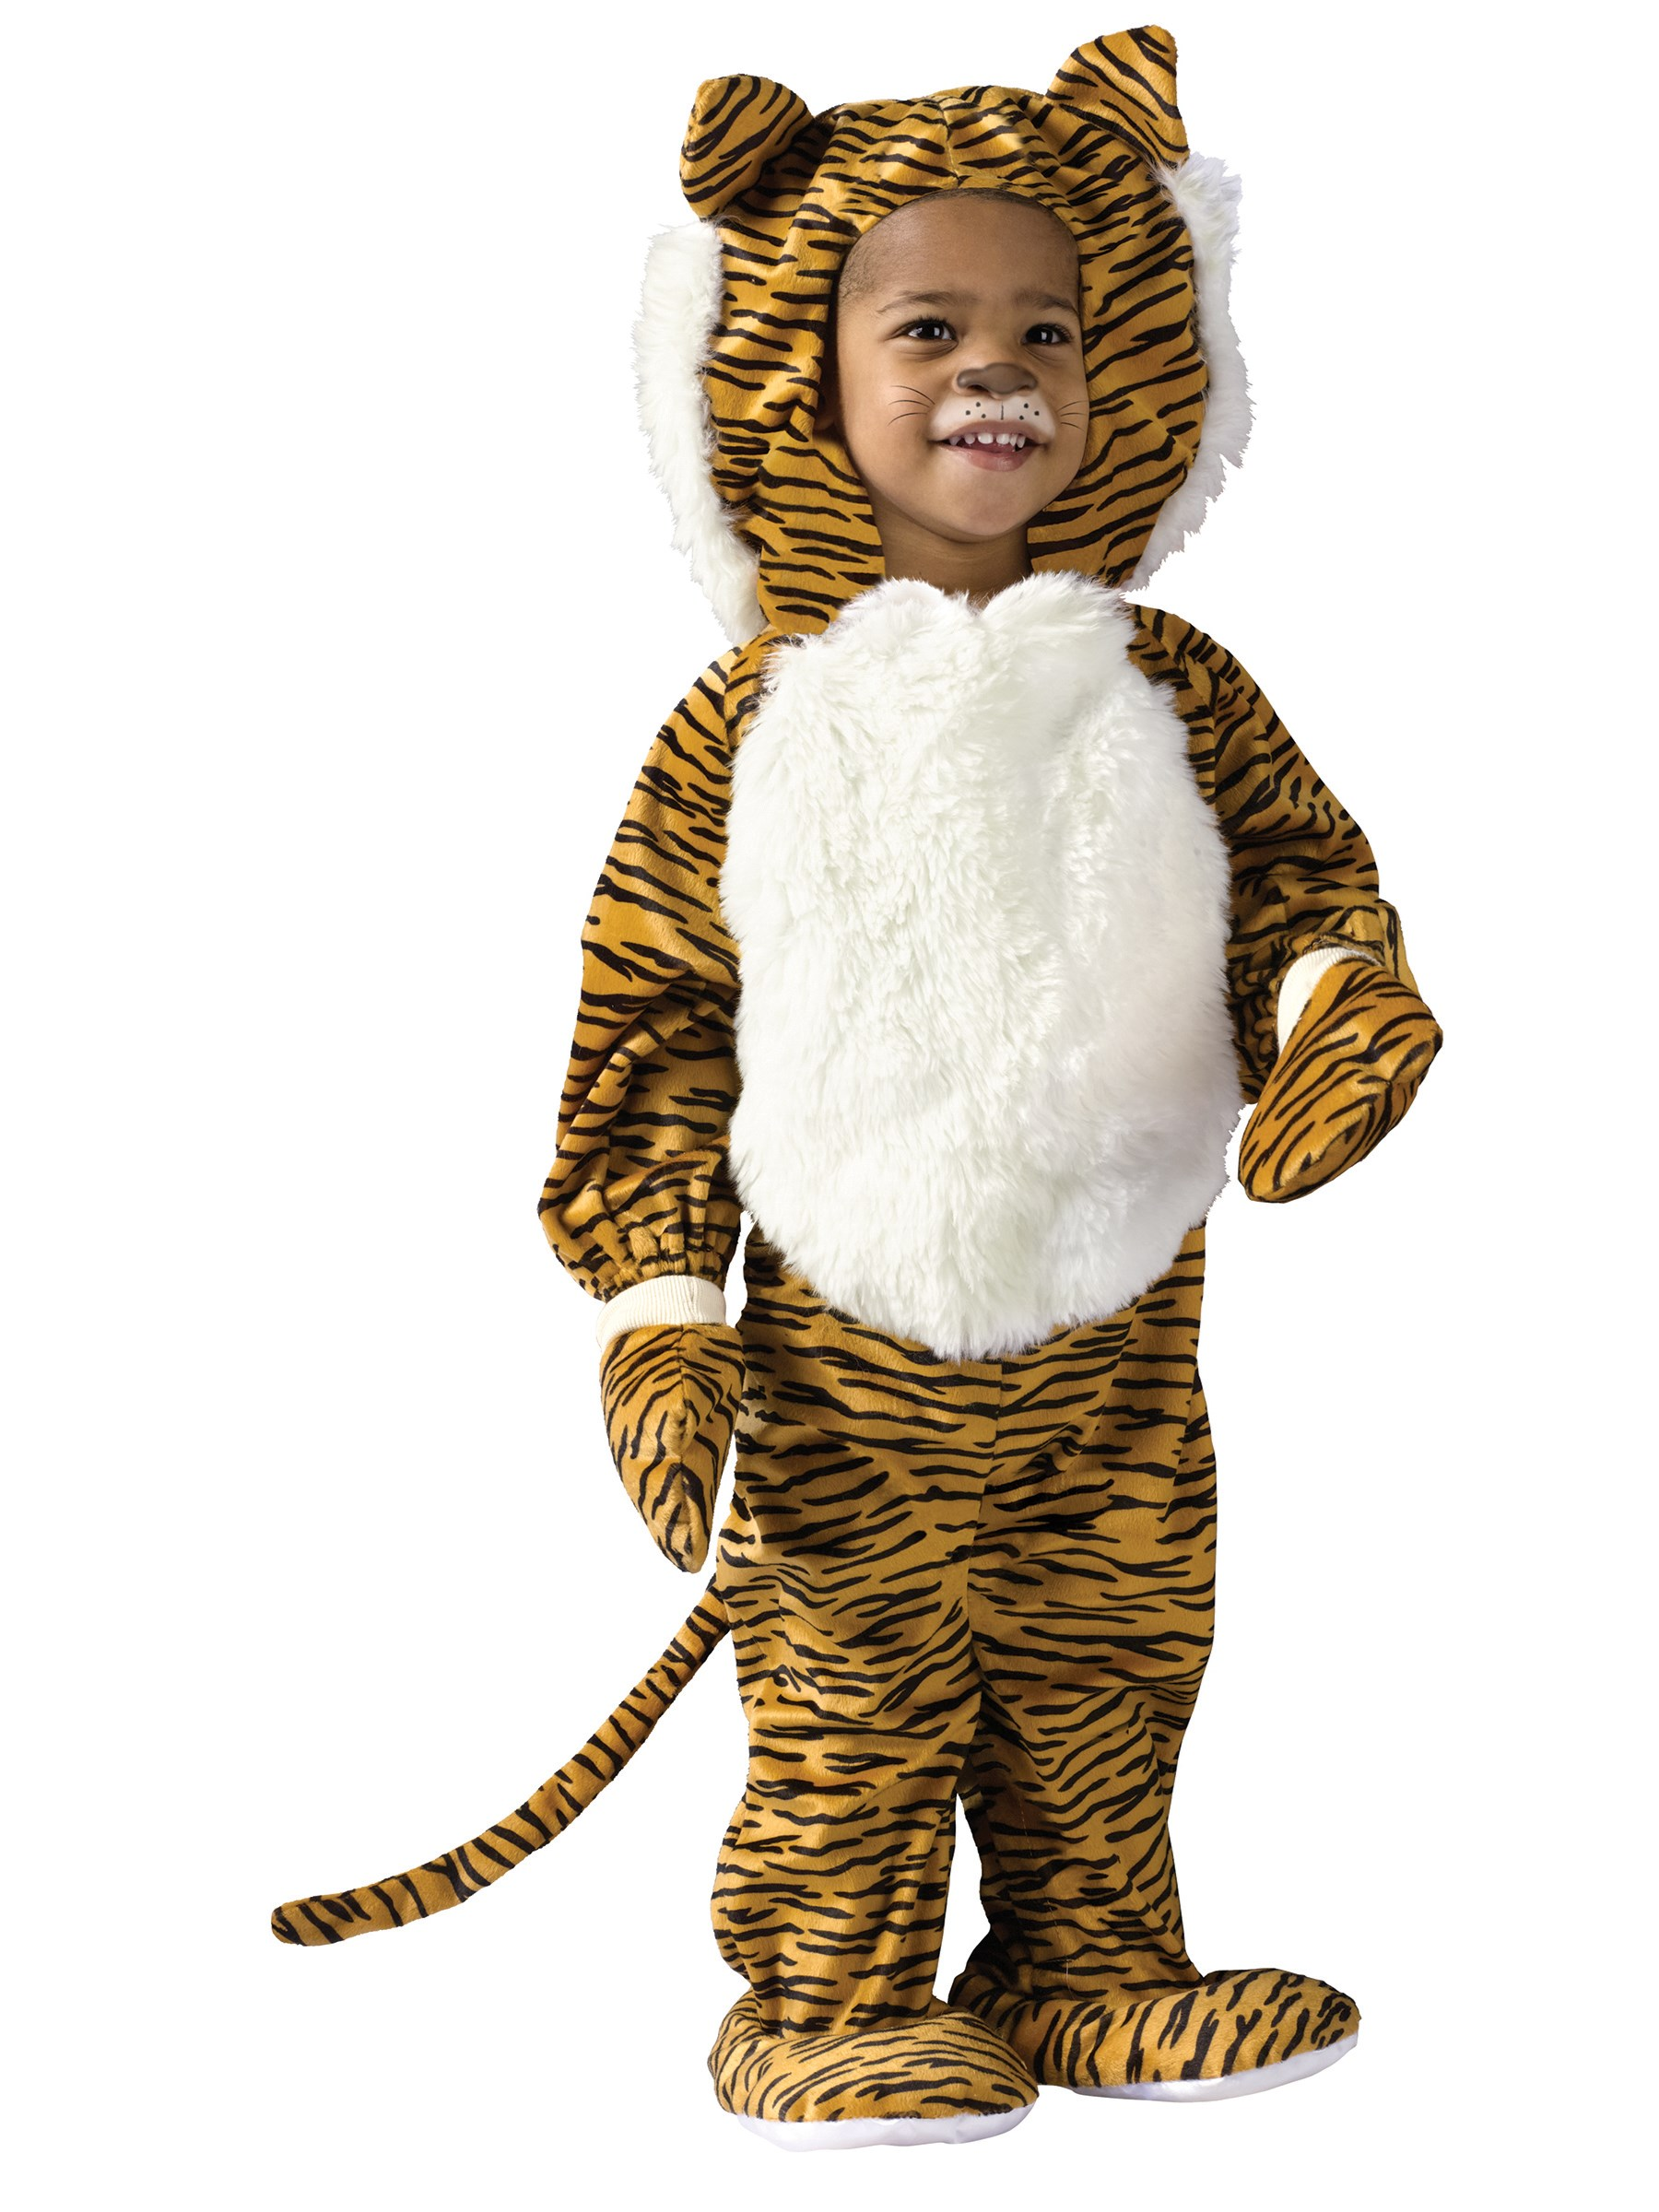 Cuddly Tiger Toddler Costume Toddler (3T-4T)